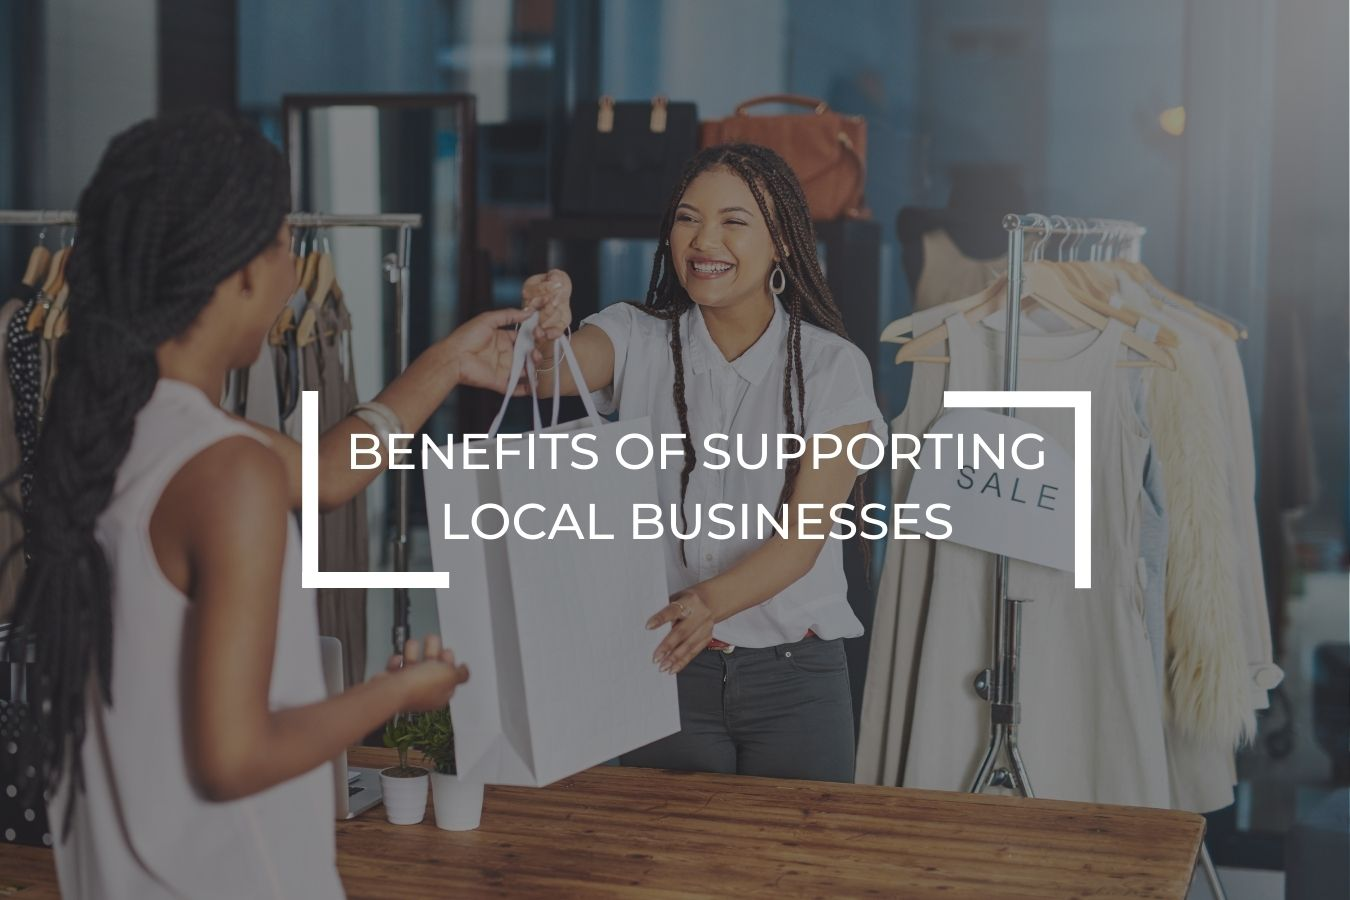 Benefits of supporting local businesses